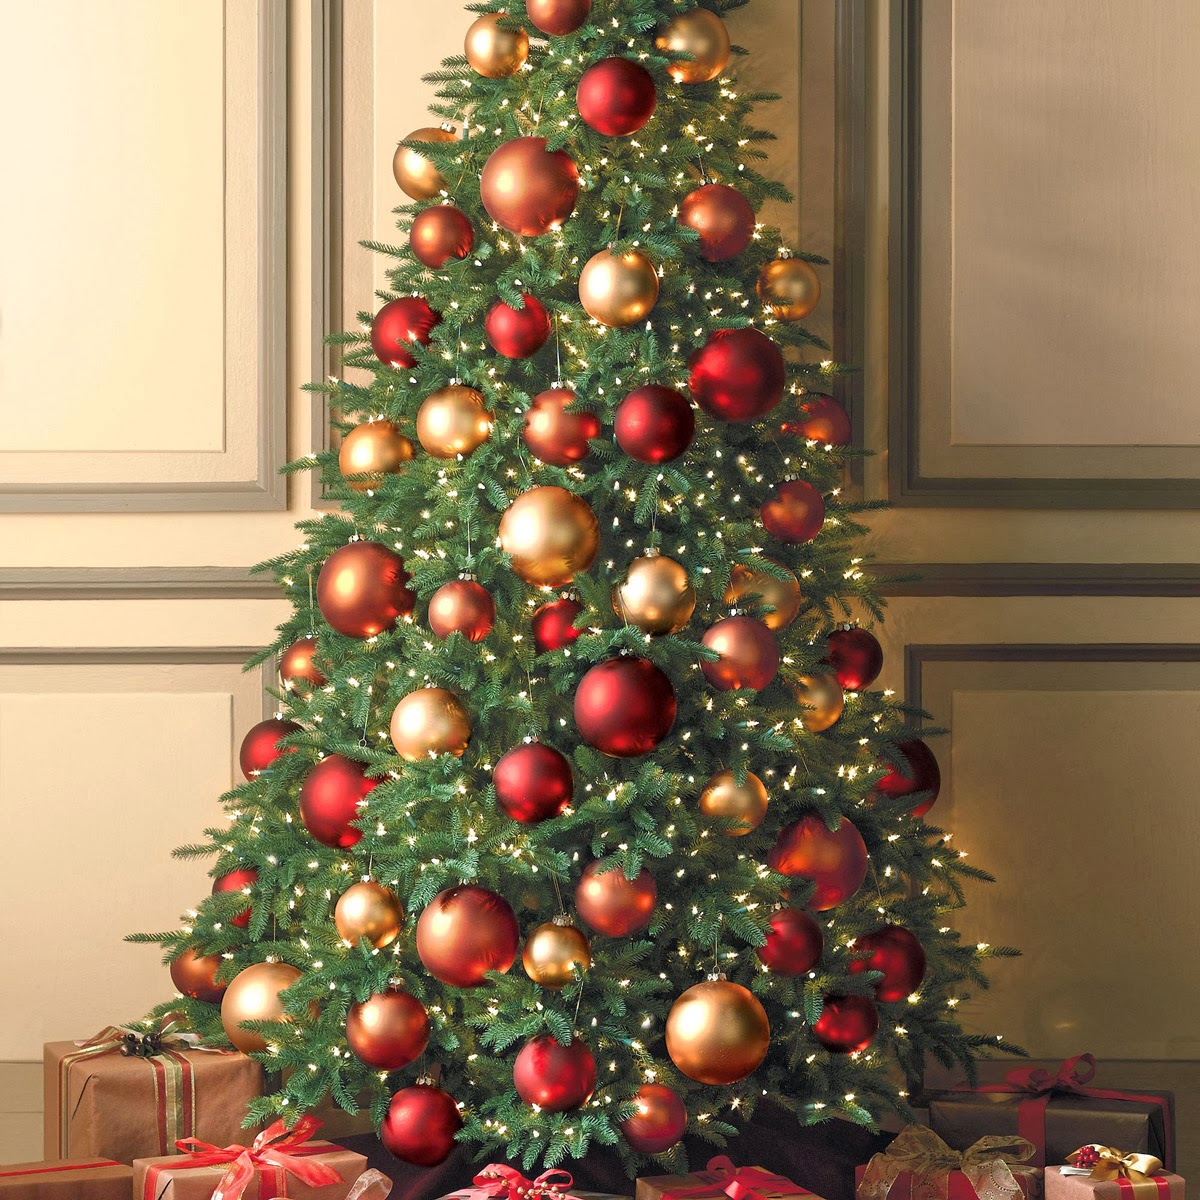 Chistmas Trees: Design Works: Christmas Trees